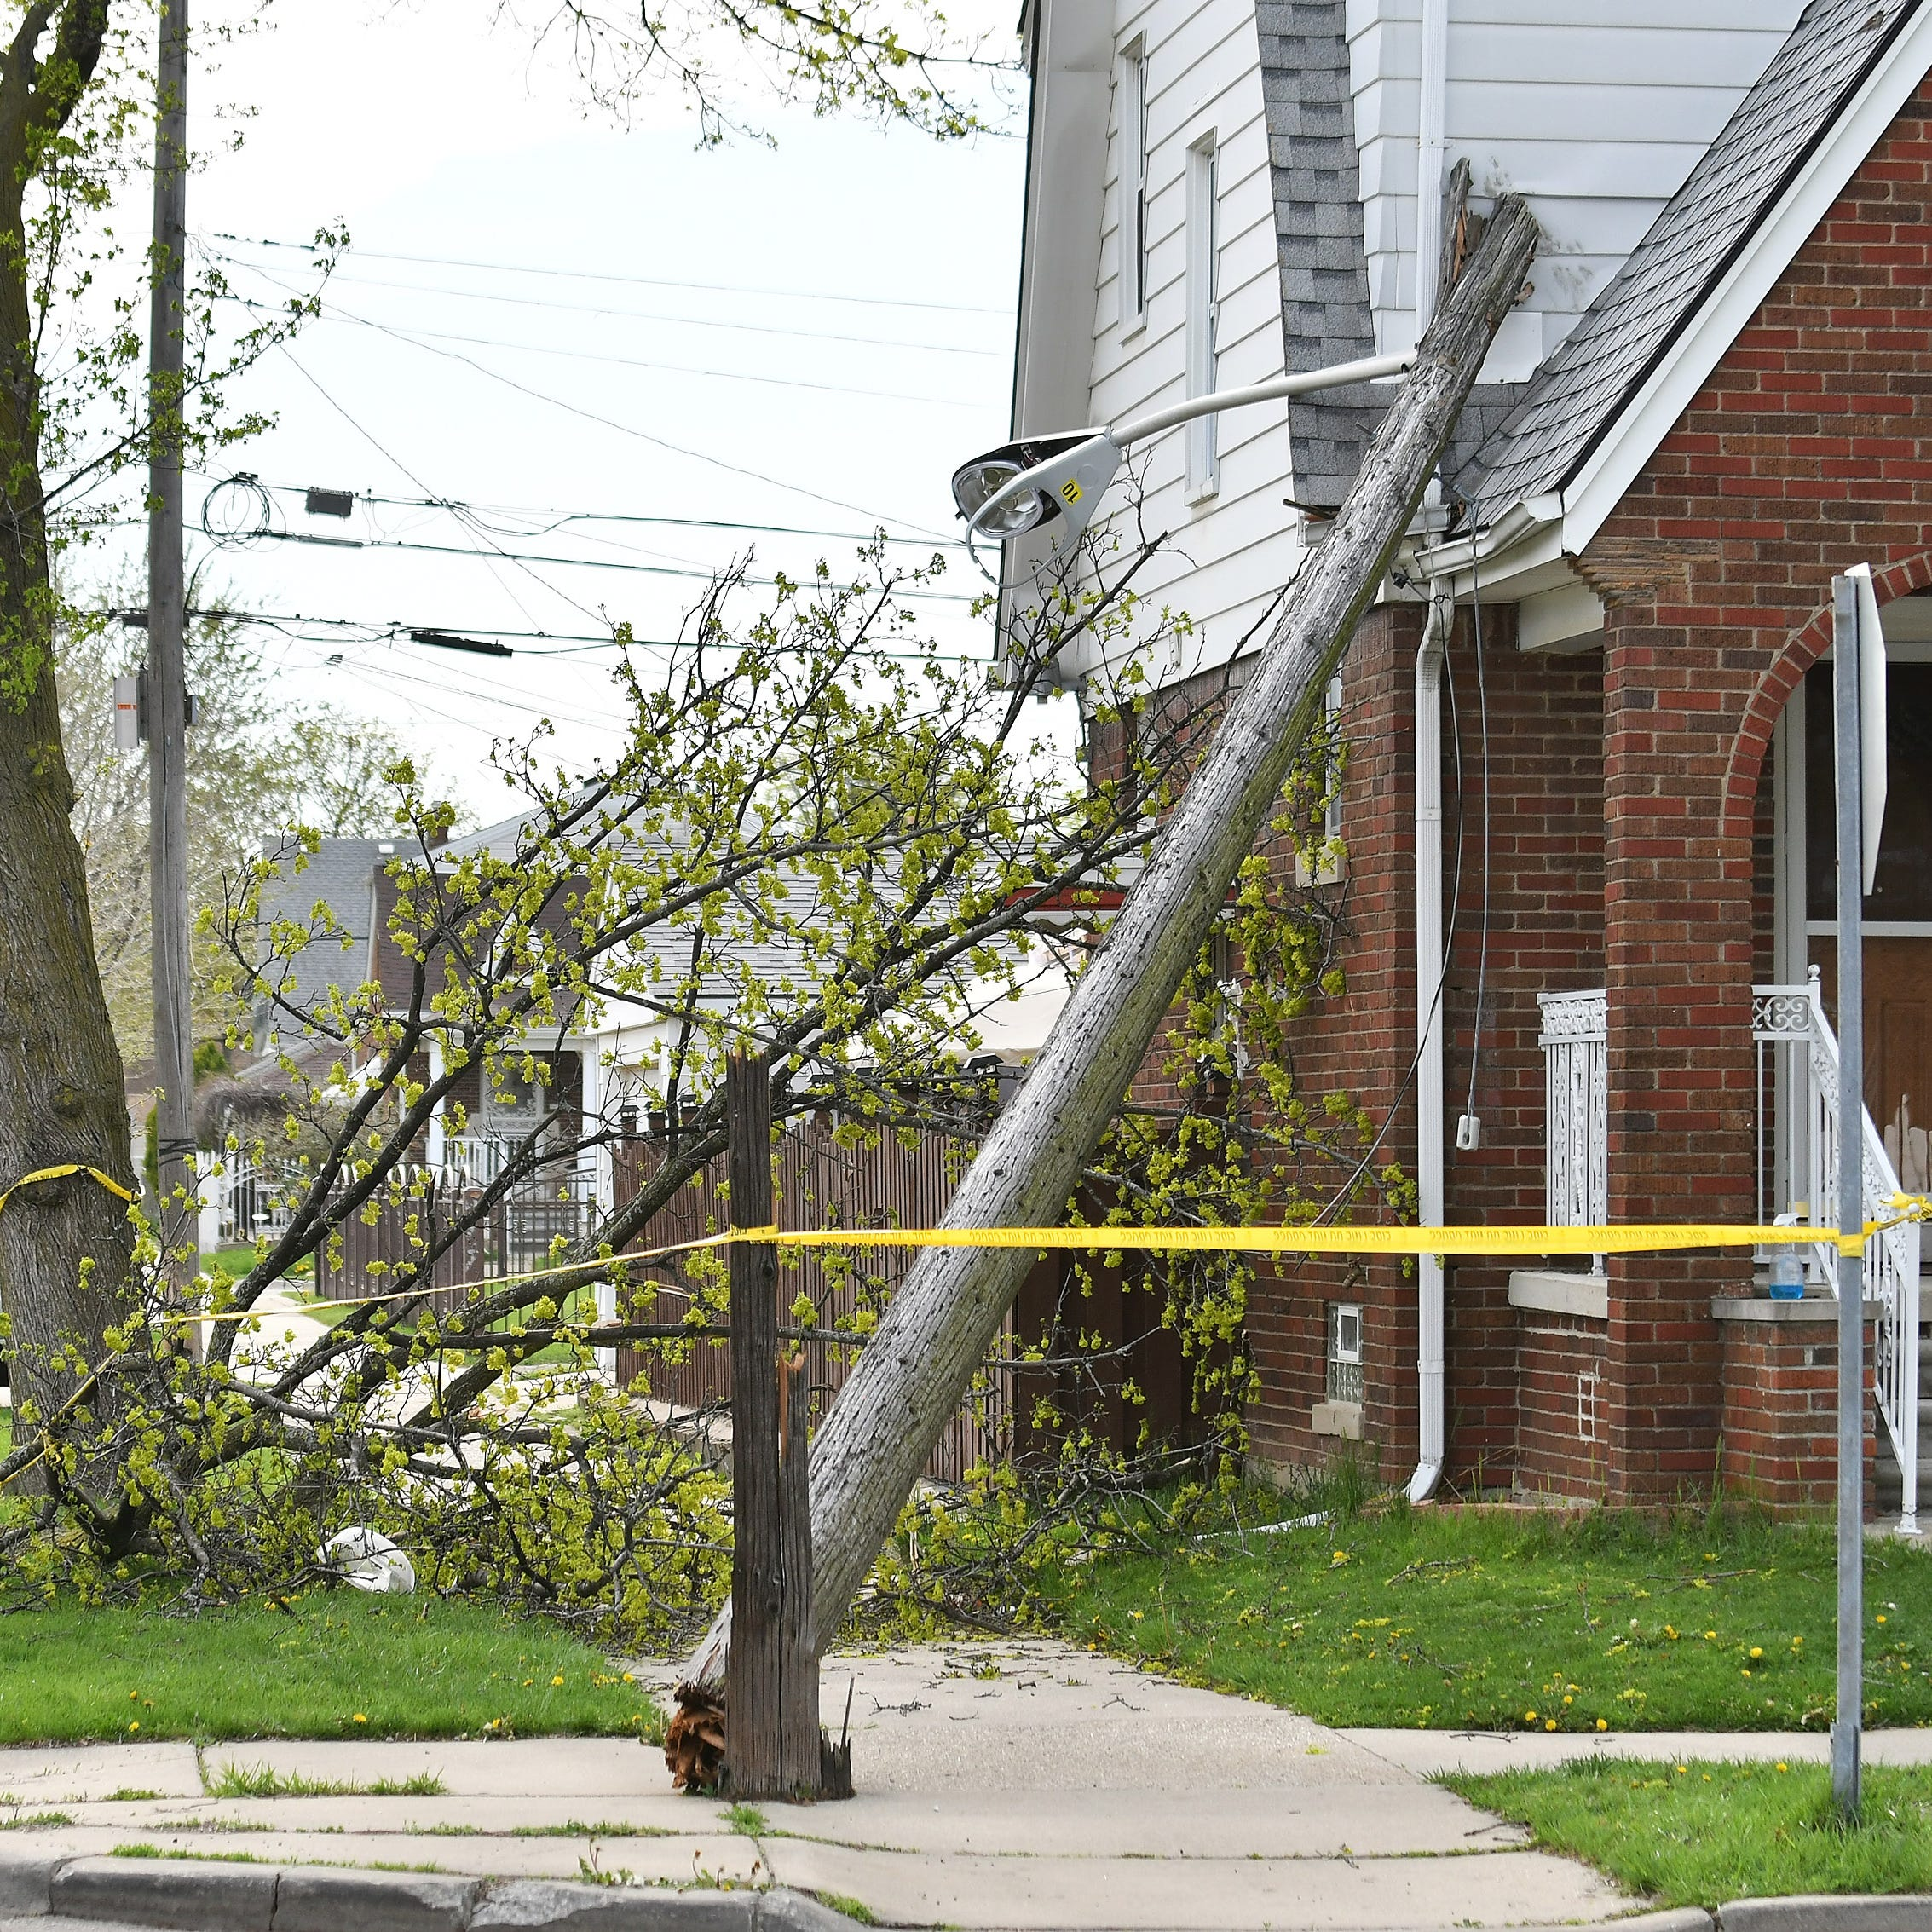 A large limb from a tree came down on power lines...